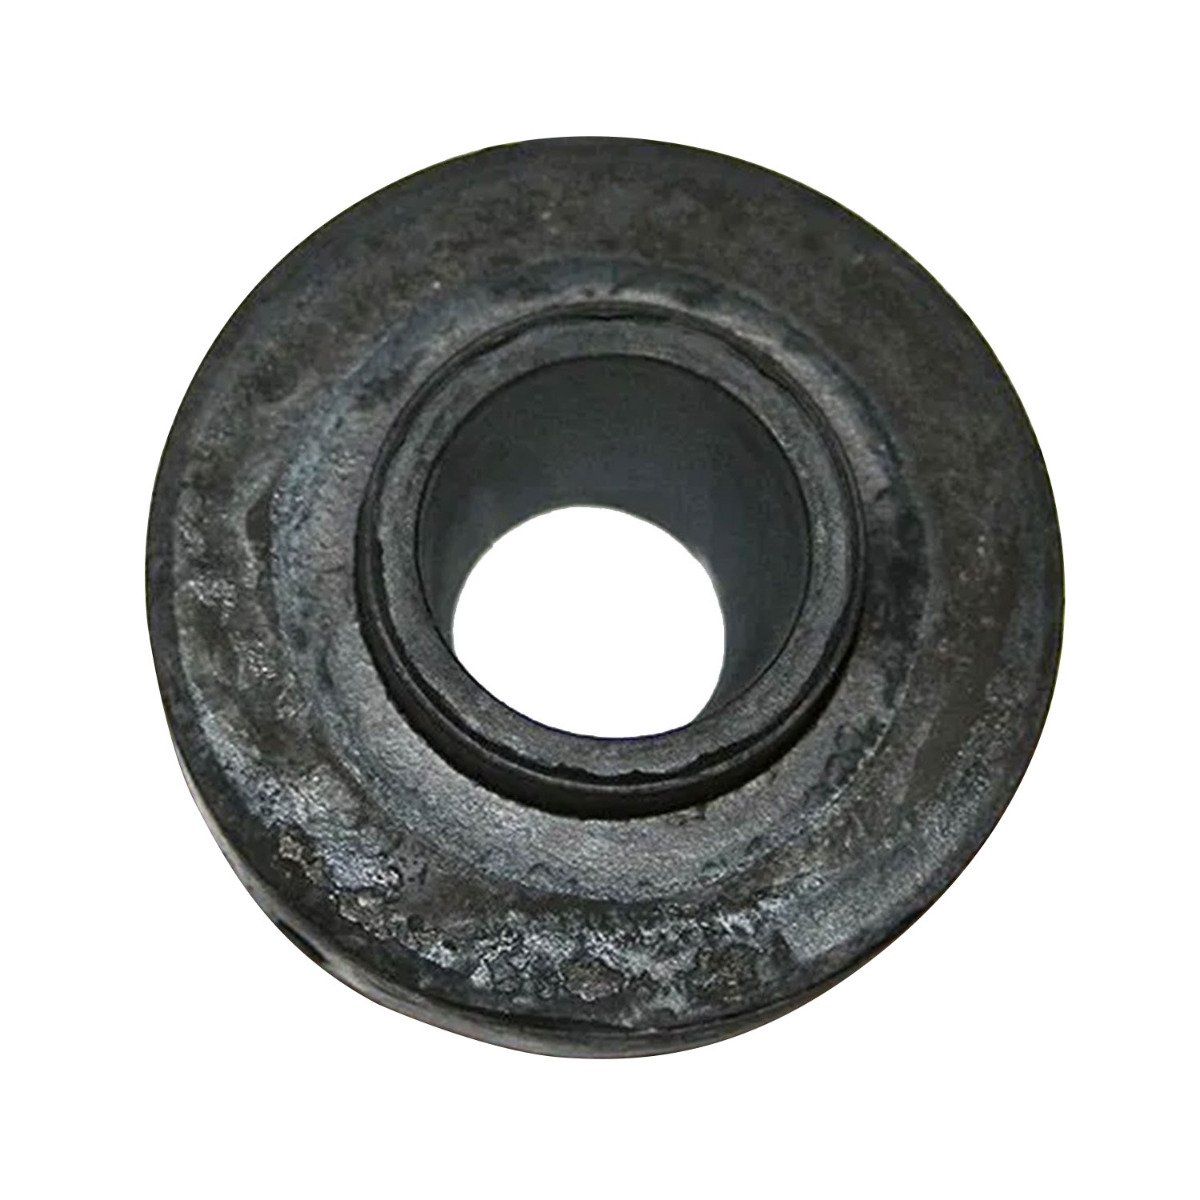 Rubber Engine Mount 6668104 Compatible with Bobcat Skid Steer Loader 653 751 753 763 773 853 863 864 873 883 7753 A220 A300 S130 S150 S160 S175 S185 S205 S220 S250 S300 S330